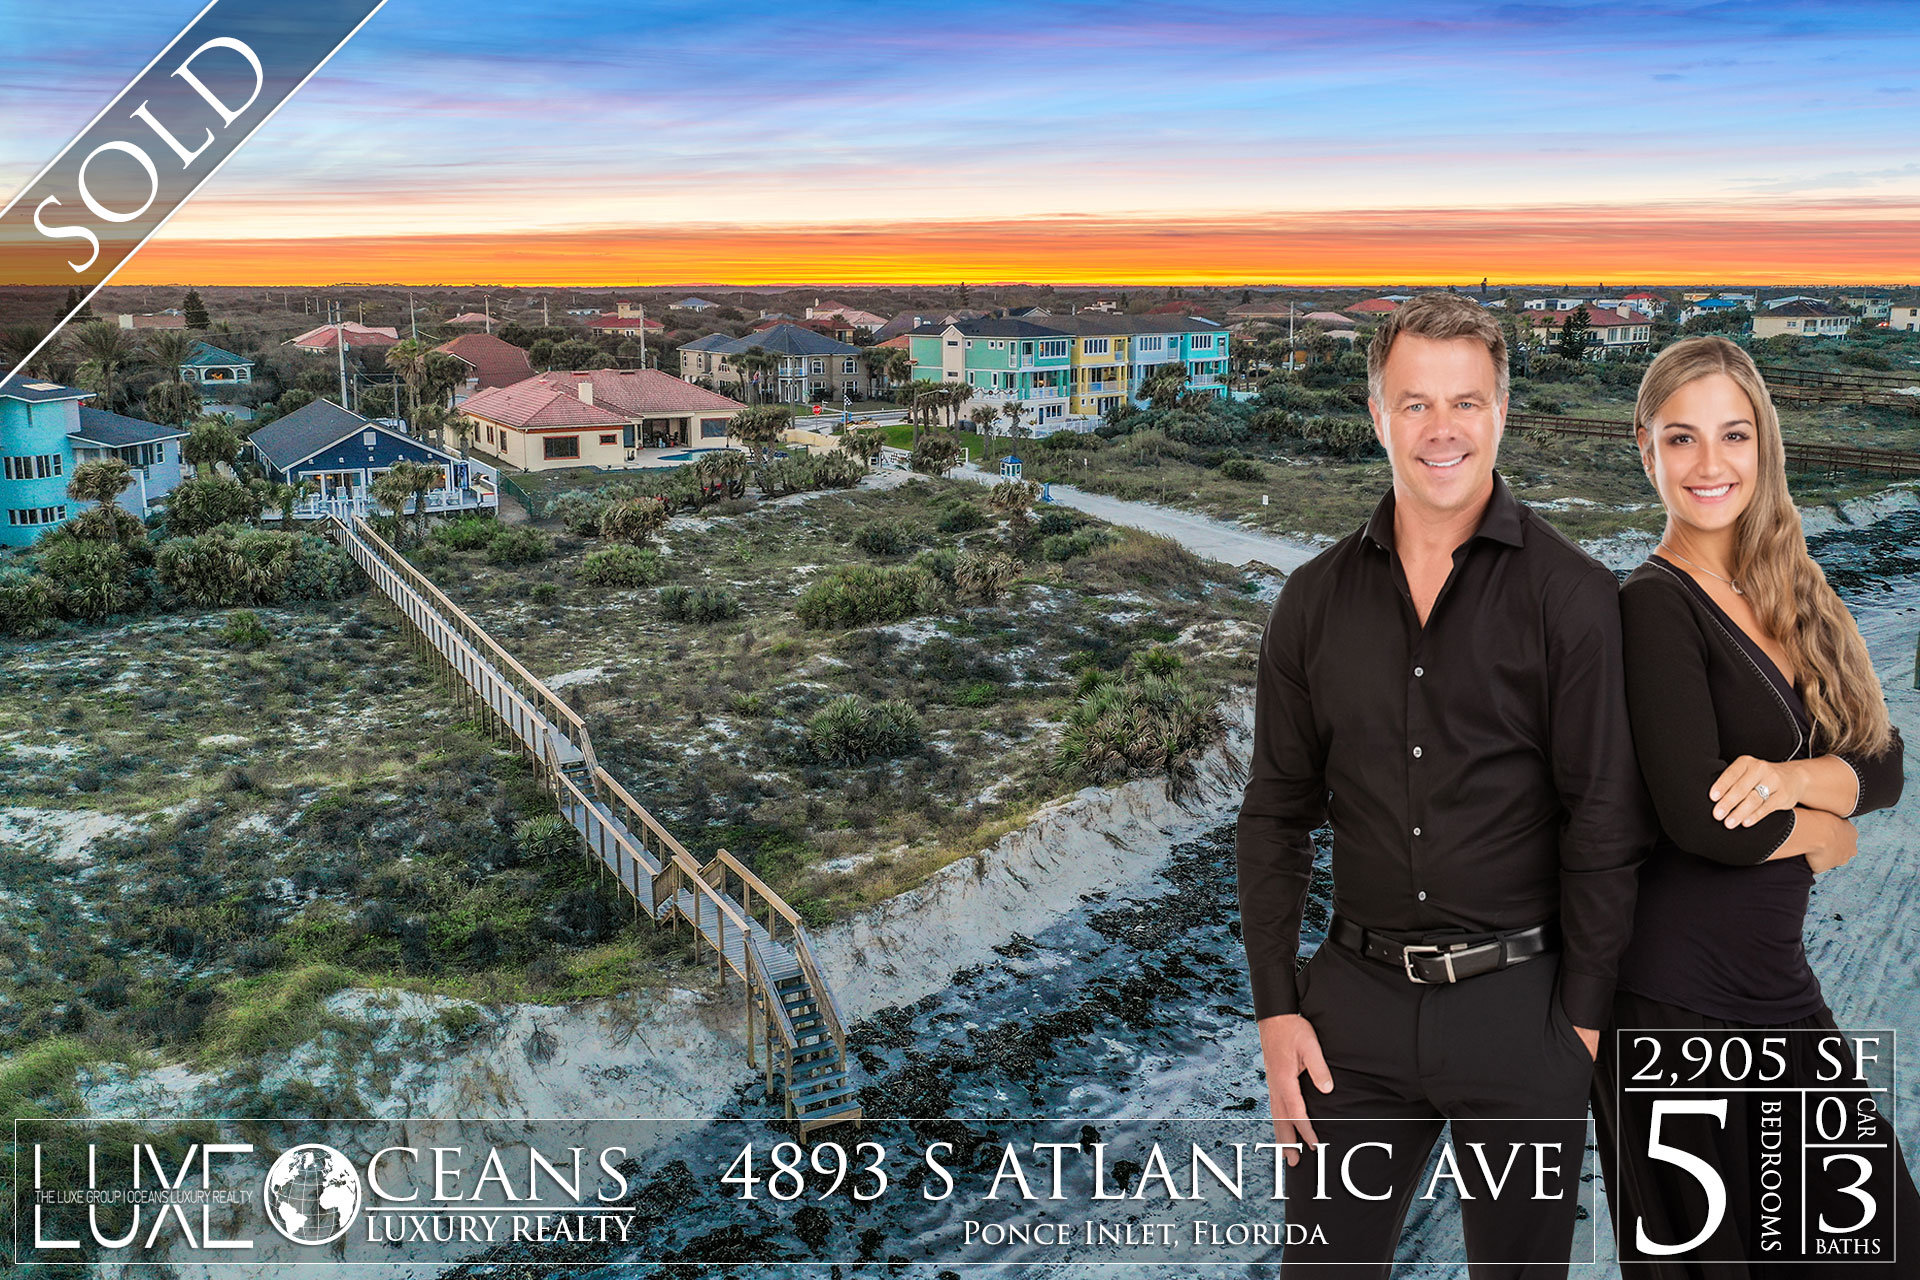 Ponce Inlet Oceanfront Homes For Sale- Sold- 4893 S Atlantic Ave Luxury Waterfront Real Estate